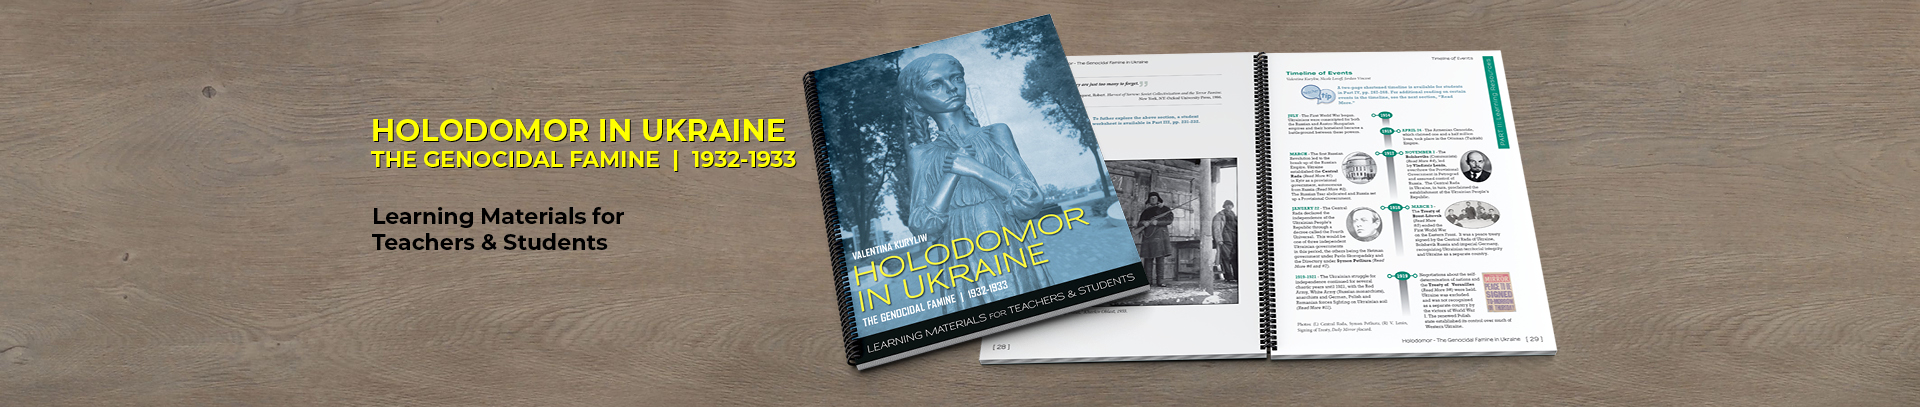 Holodomor-in-Ukraine book